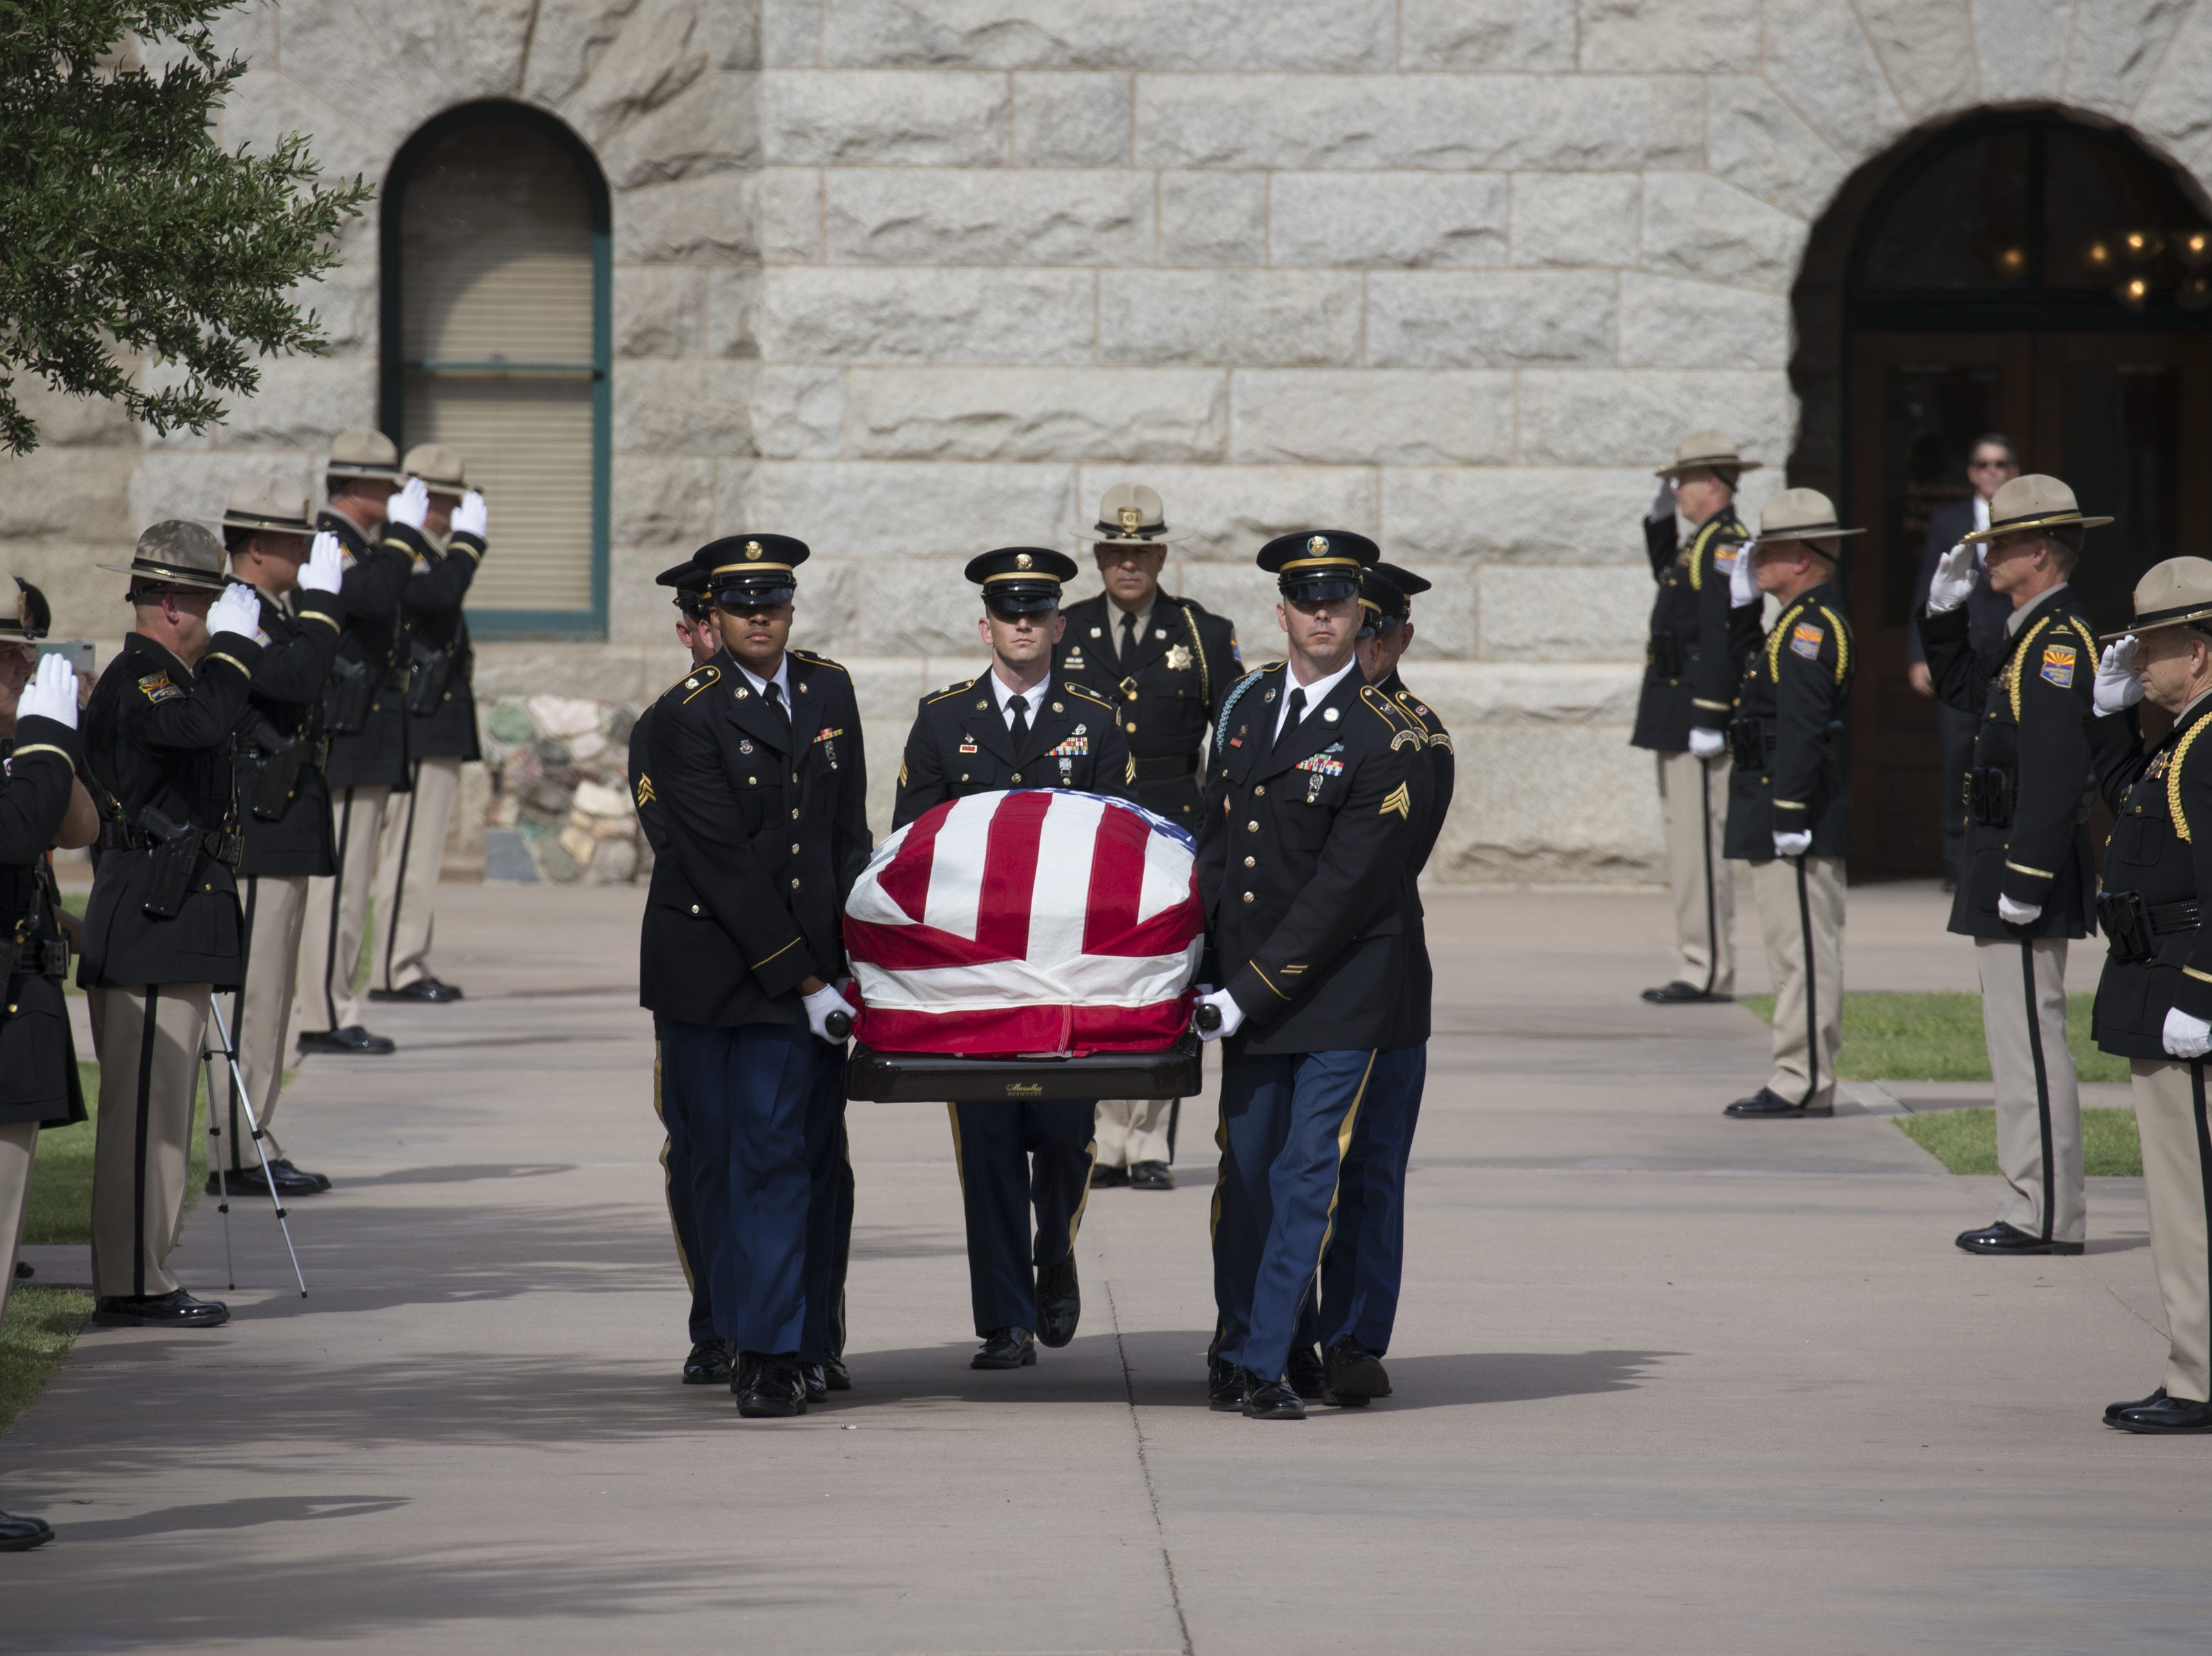 The casket carrying the body of John McCain leaves the Arizona State Capitol, August 30, 2018, for the memorial service at North Phoenix Baptist Church, Phoenix, Arizona.